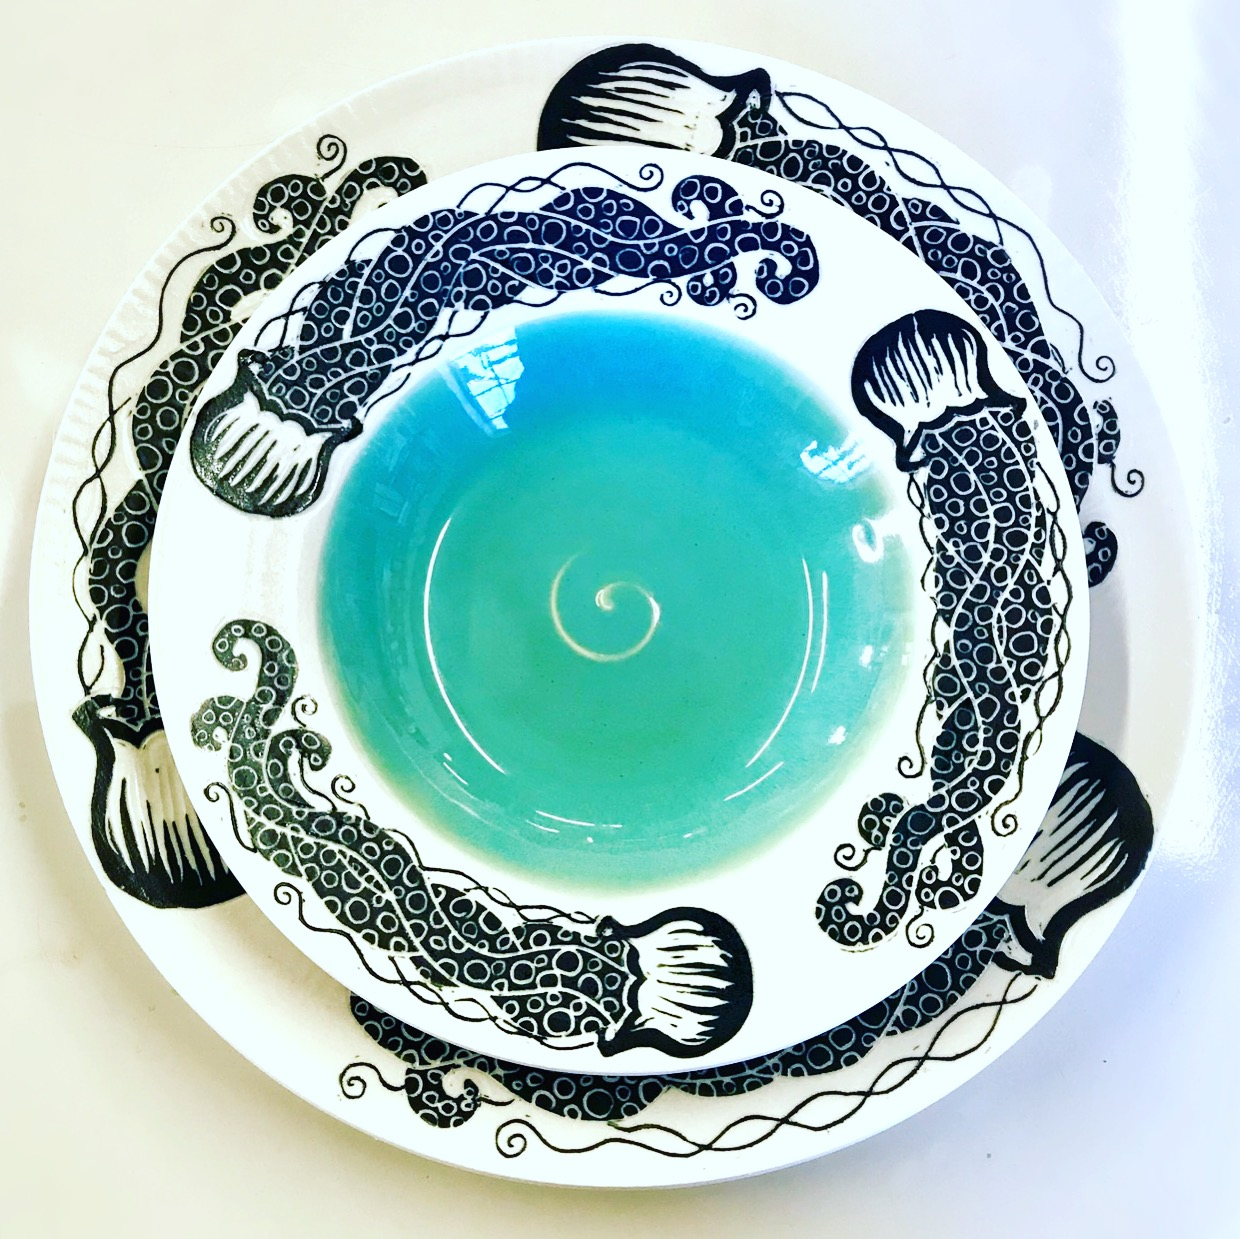 Jellyfish Bowl and Dinner Plate